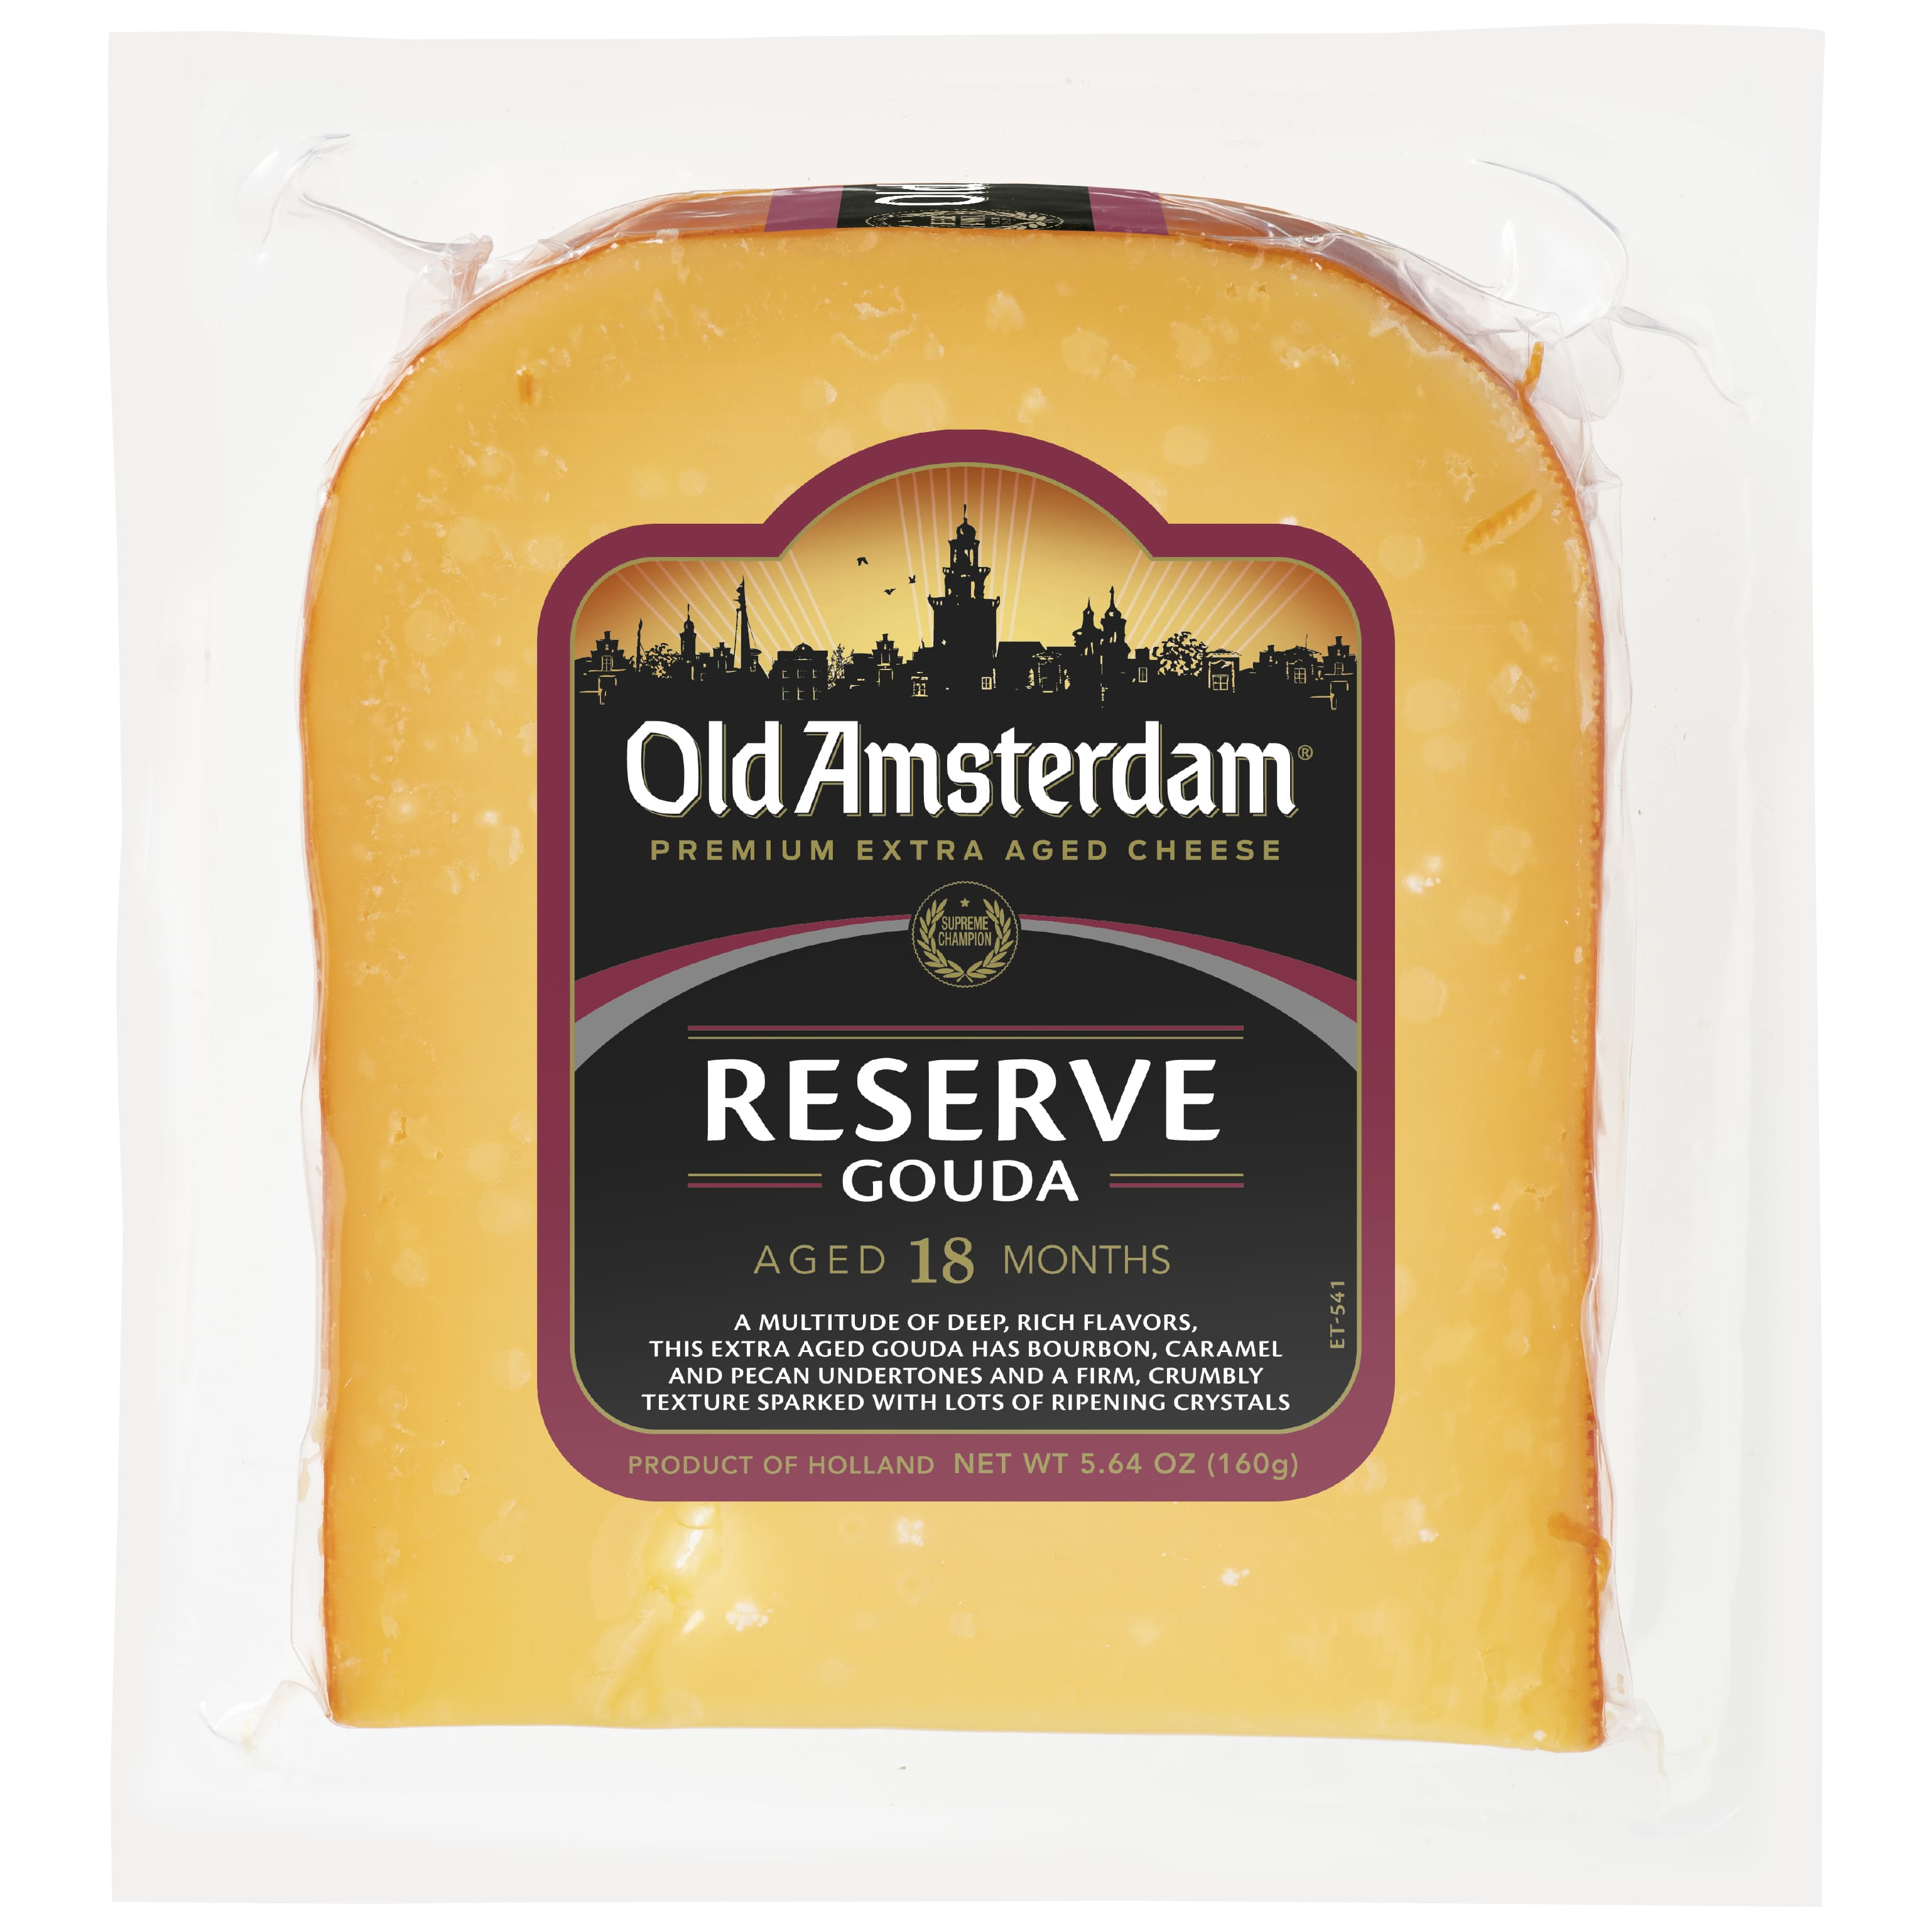 Old Amsterdam Debuts Two New Flavors Of Aged Gouda Cheese